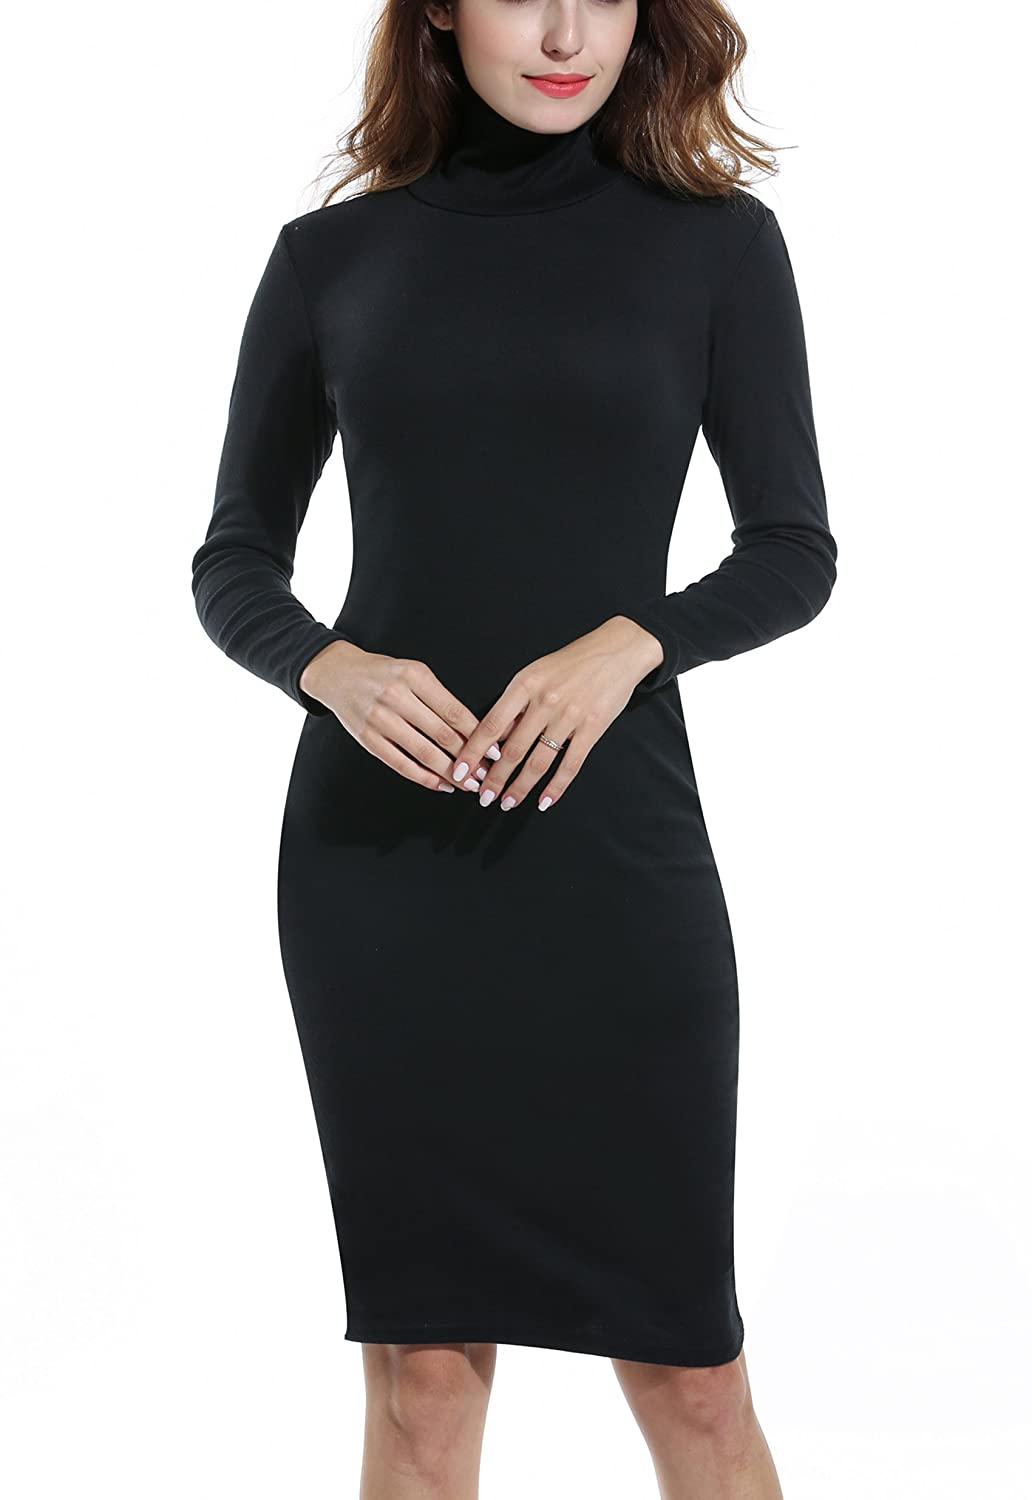 977a430e98 ACEVOG Women s Turtleneck Ribbed Long Sleeve Knit Sweater Dresses at Amazon  Women s Clothing store